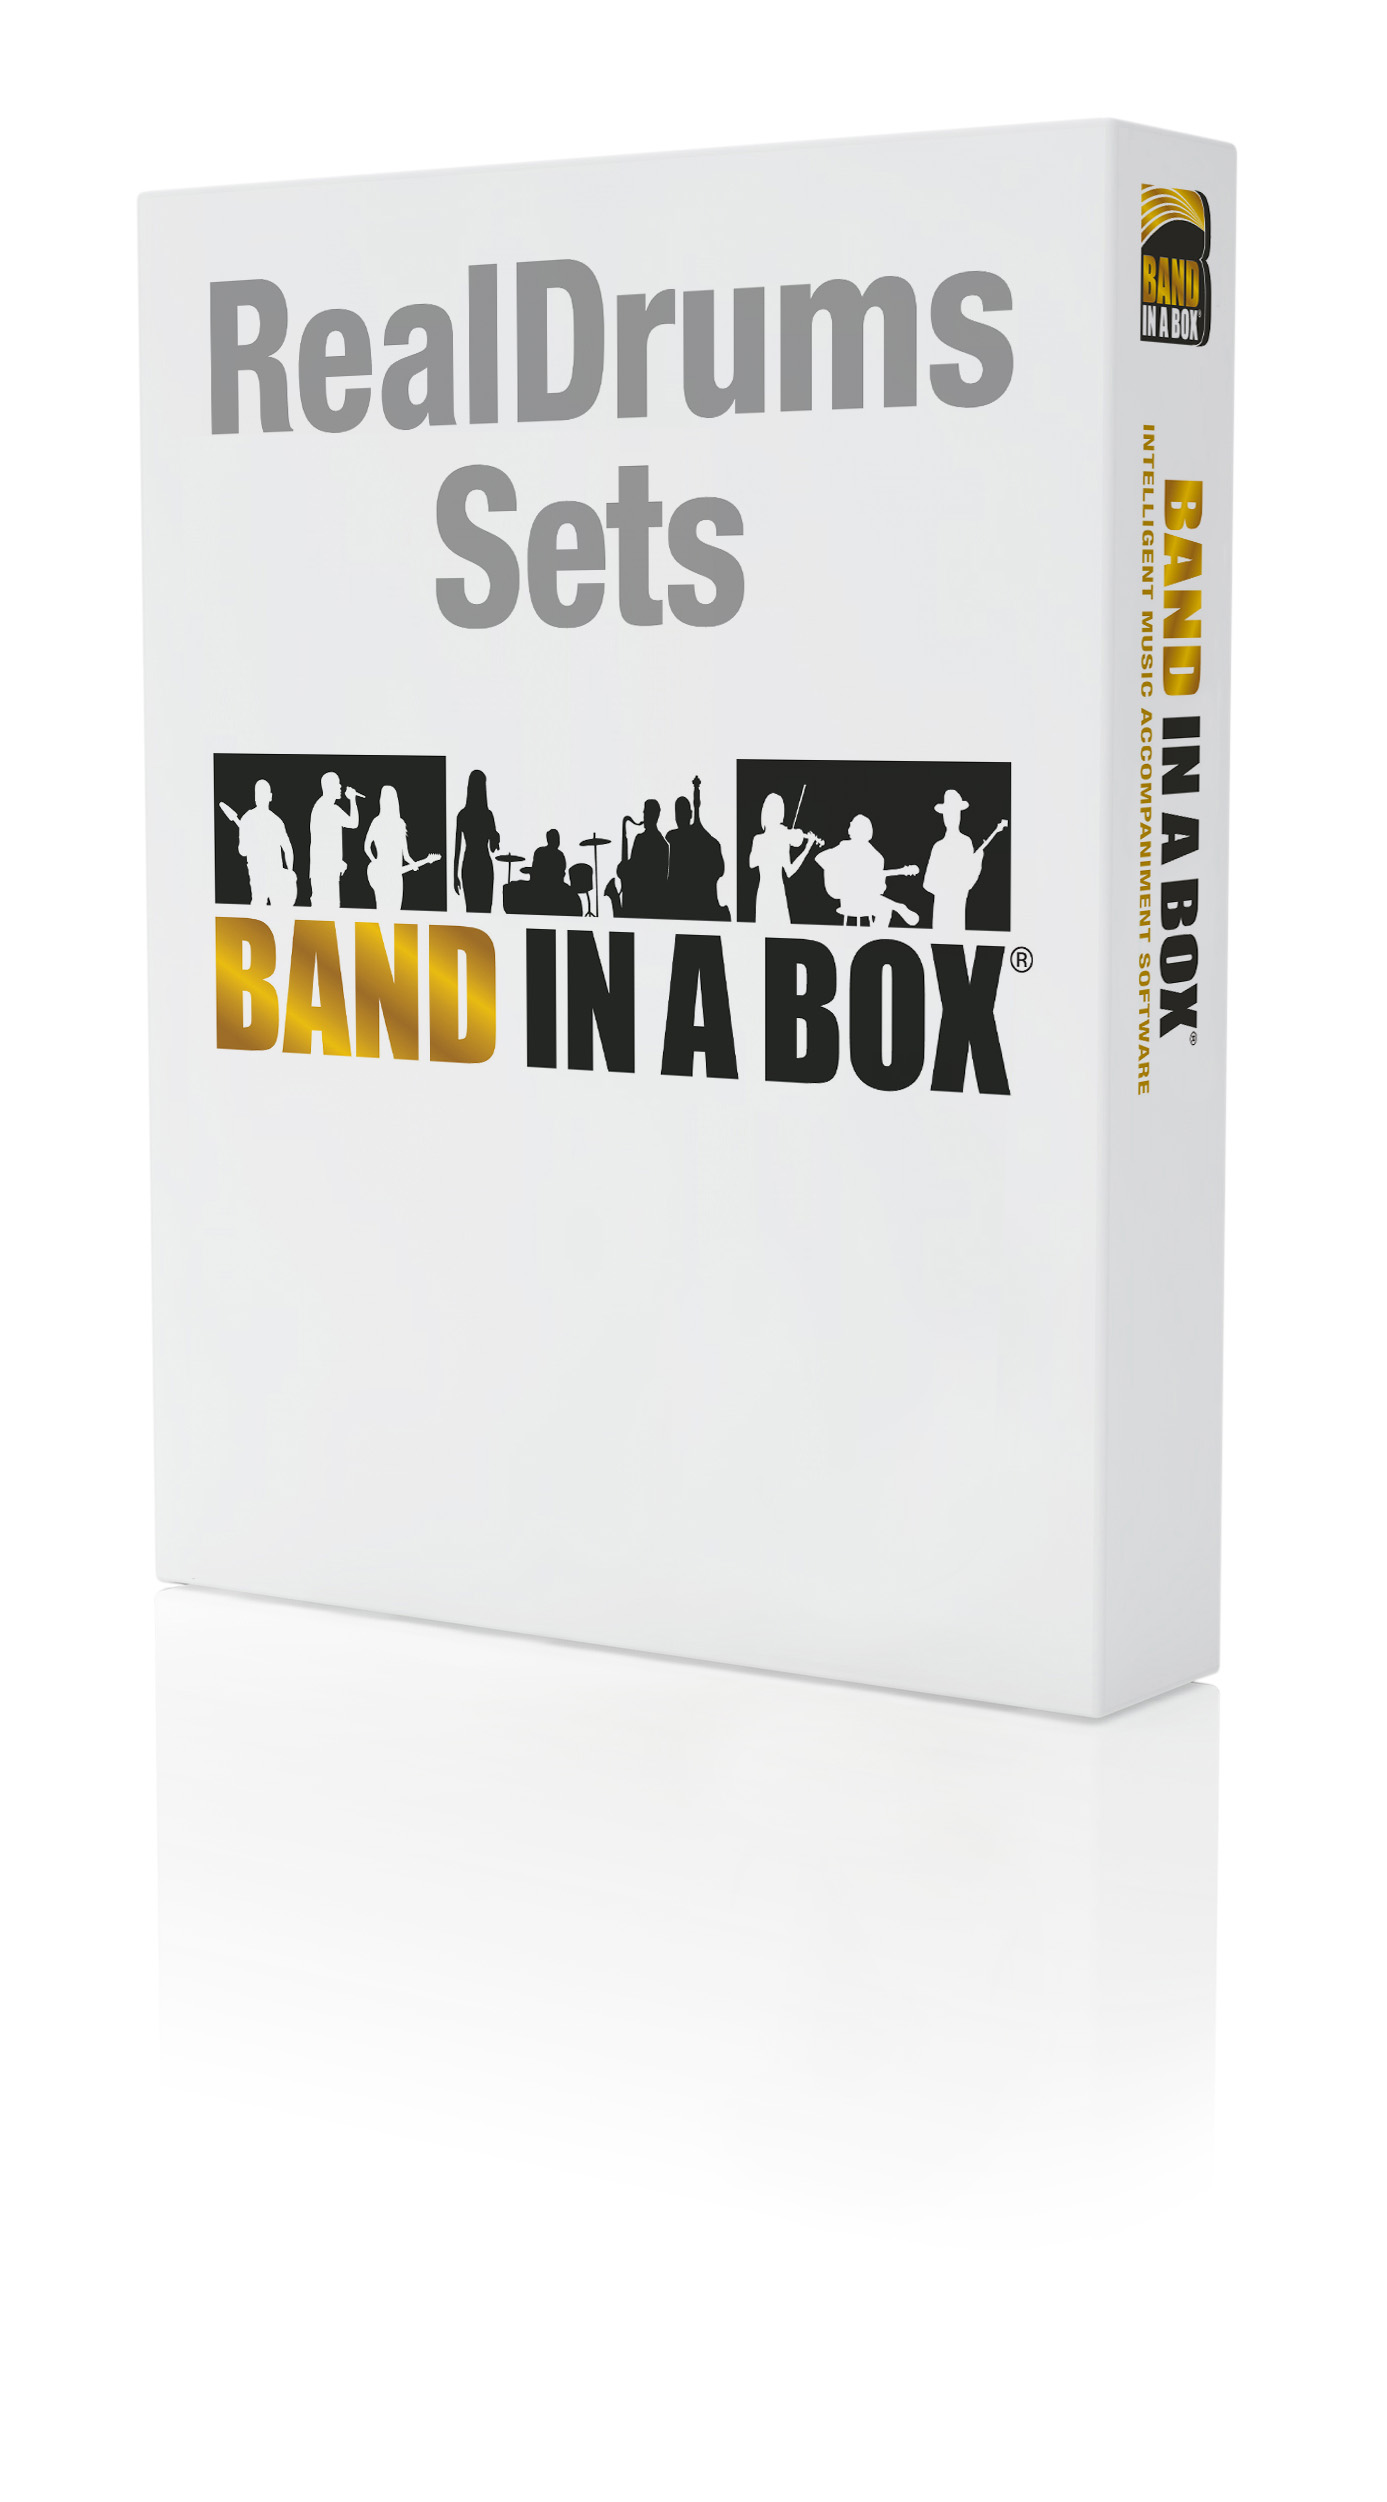 PG Music - Band-in-a-Box for Windows - All RealDrums Sets